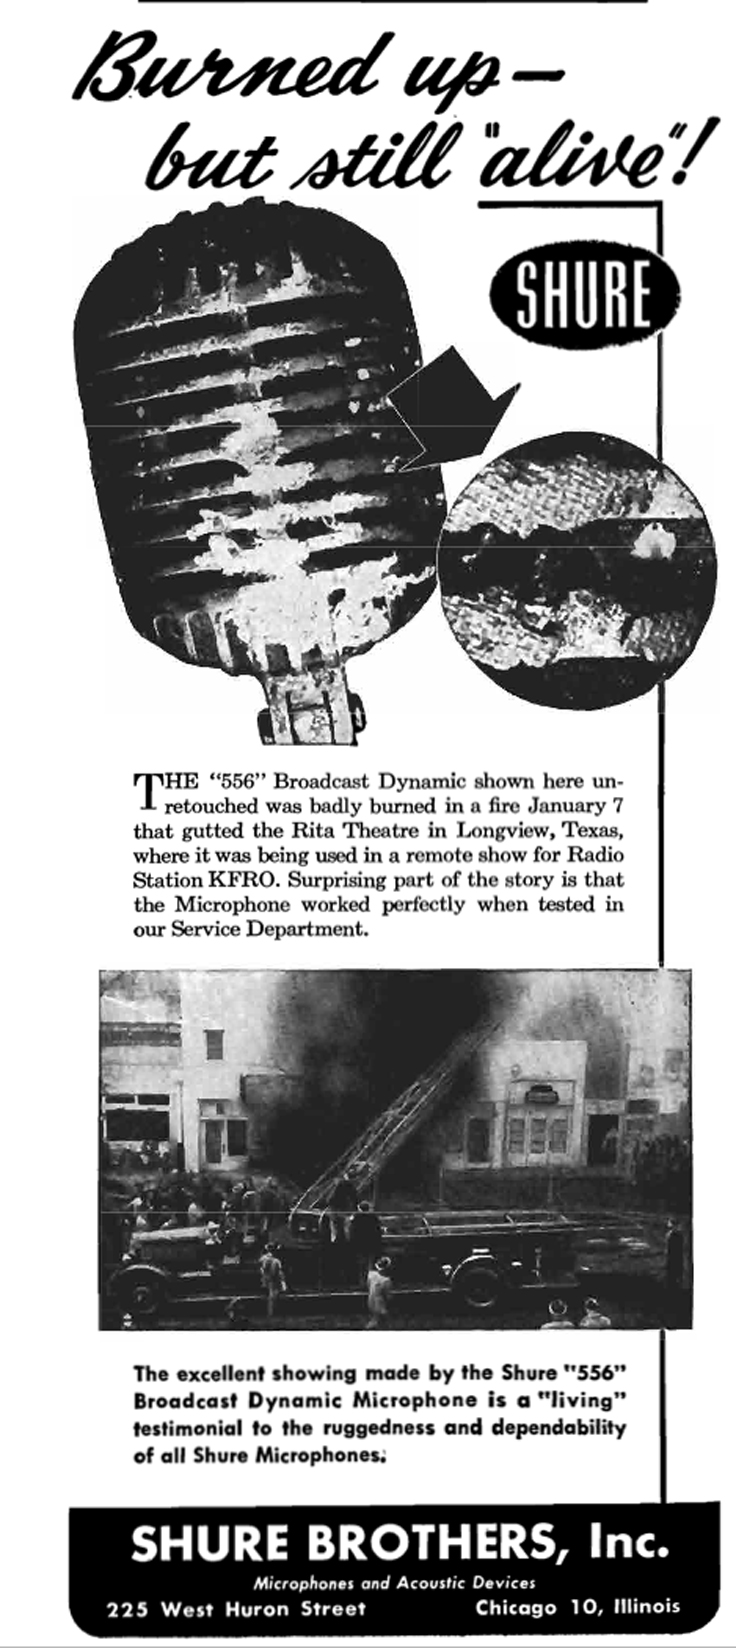 1950 Shure 556 microphone ad showing that it was still working after being in a fire